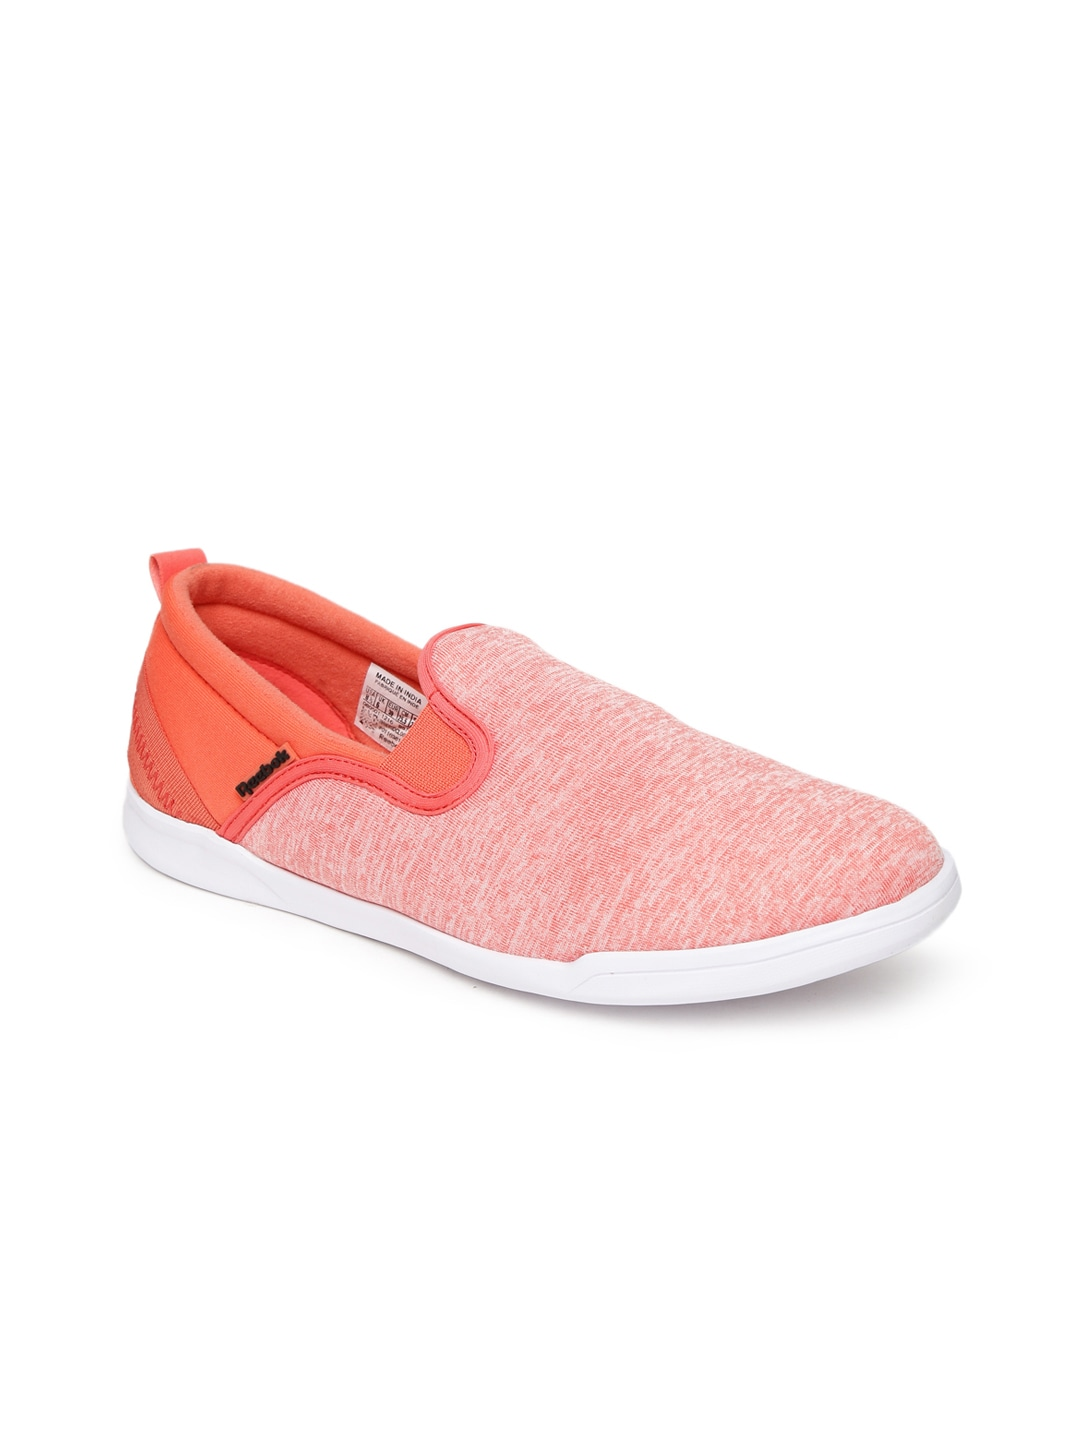 Reebok Canvas Shoes - Buy Reebok Canvas Shoes online in India 57fb6ab22